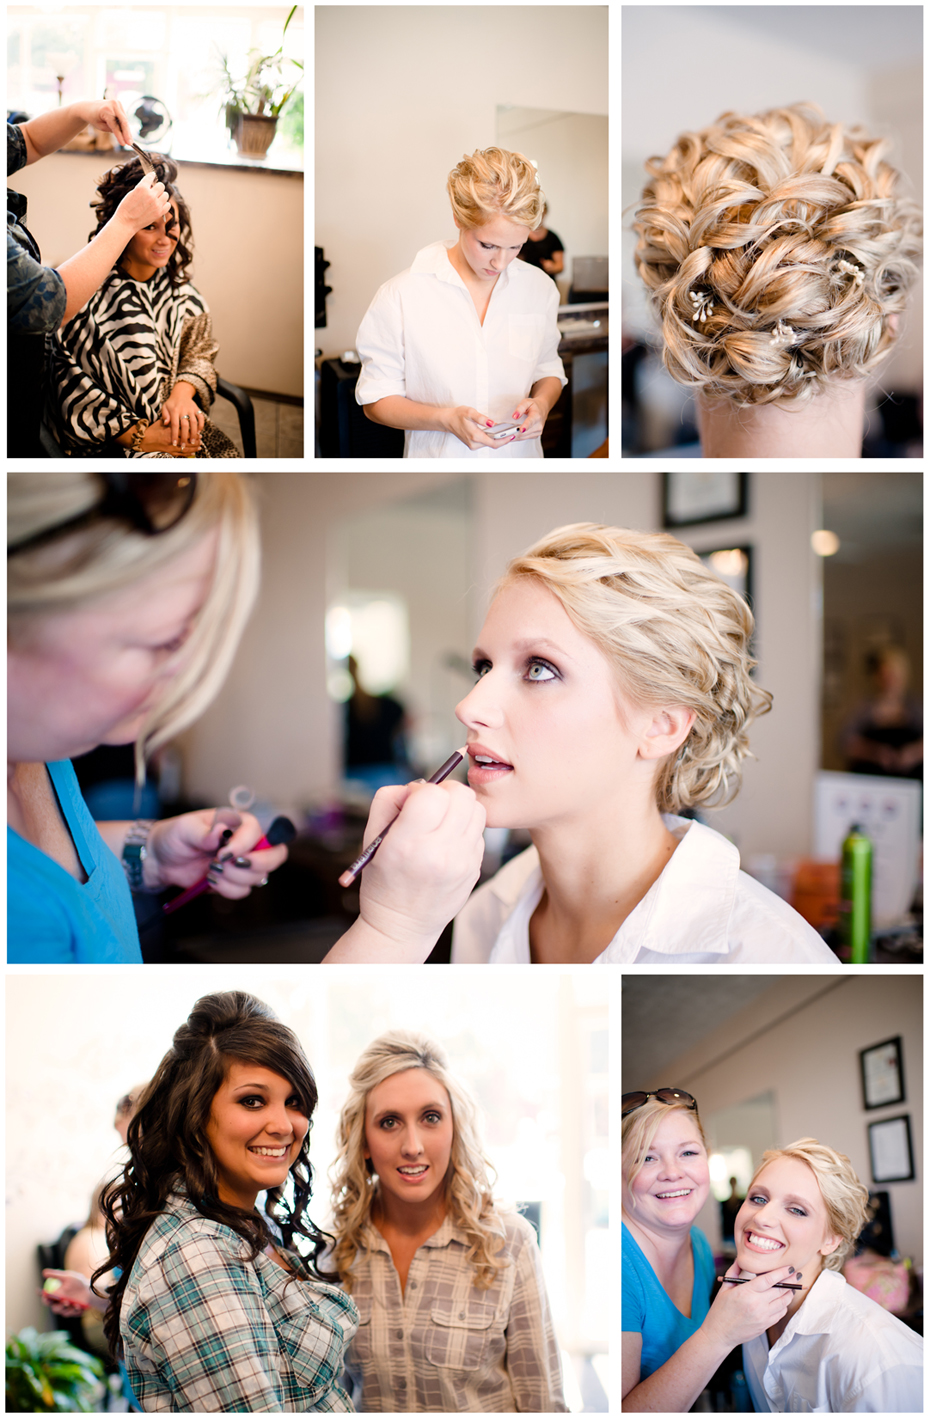 Bride_bridesmaids_getting_ready_for_wedding_at_salon